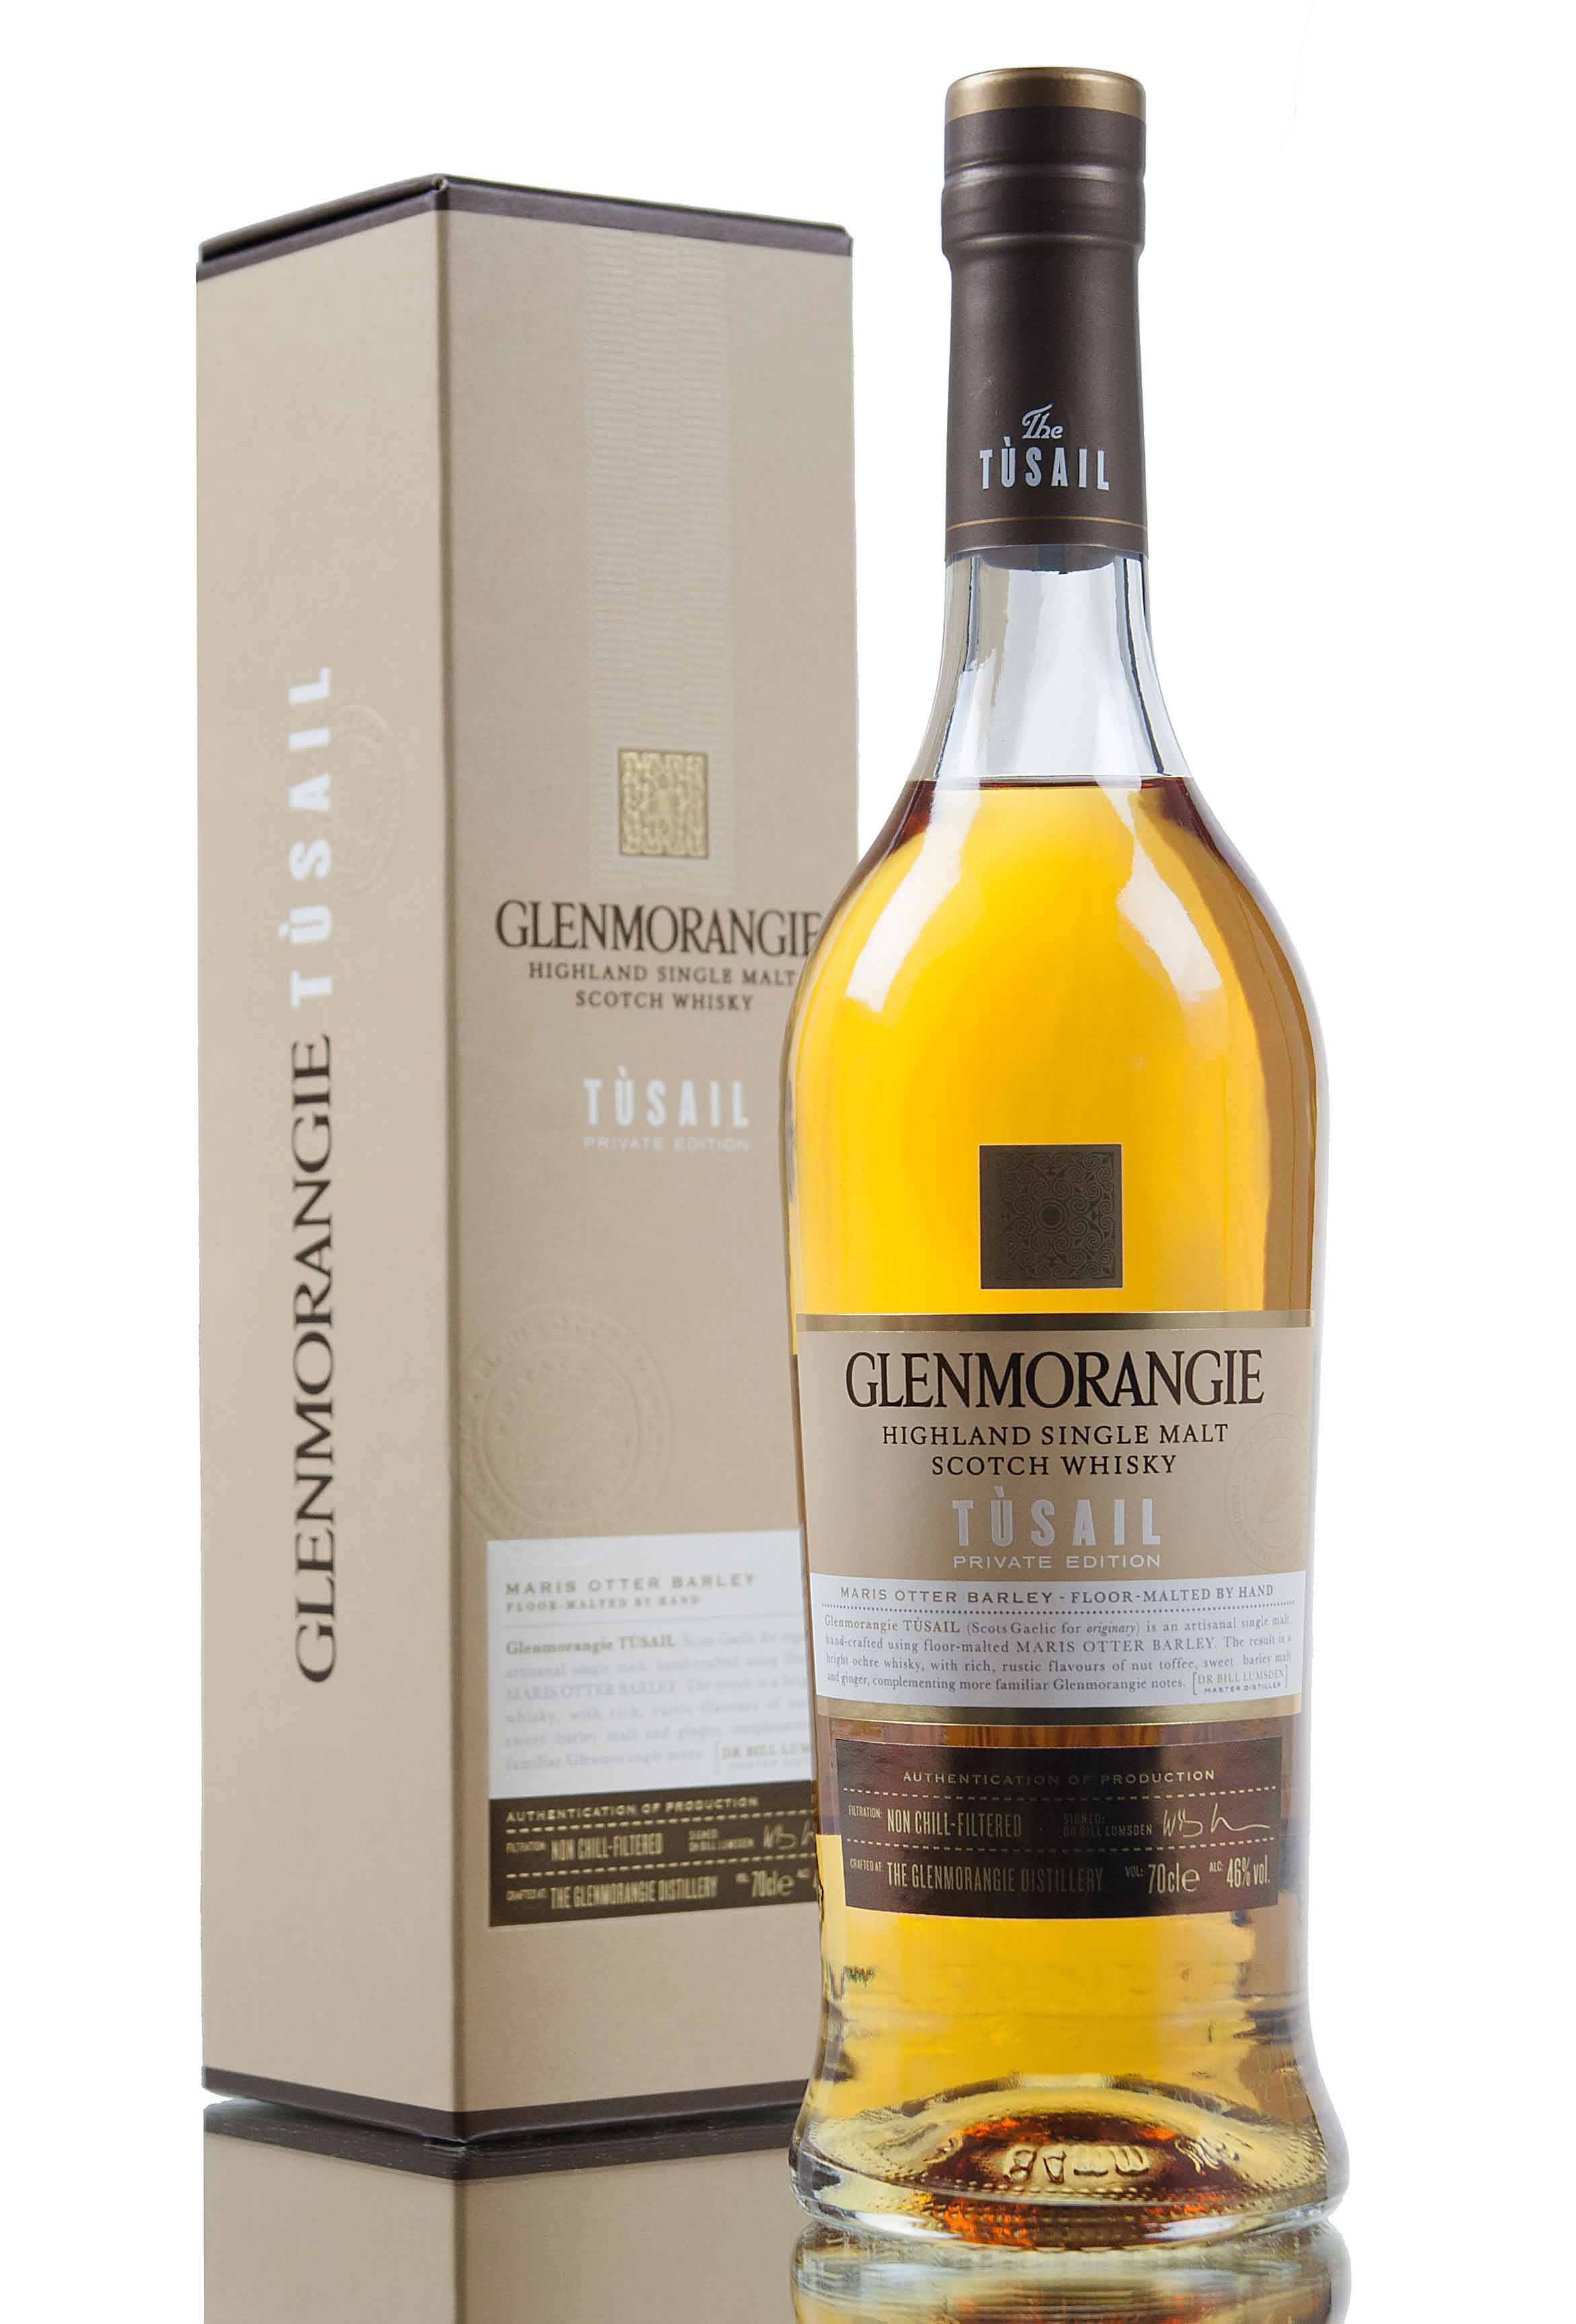 Glenmorangie Tùsail / Private Edition